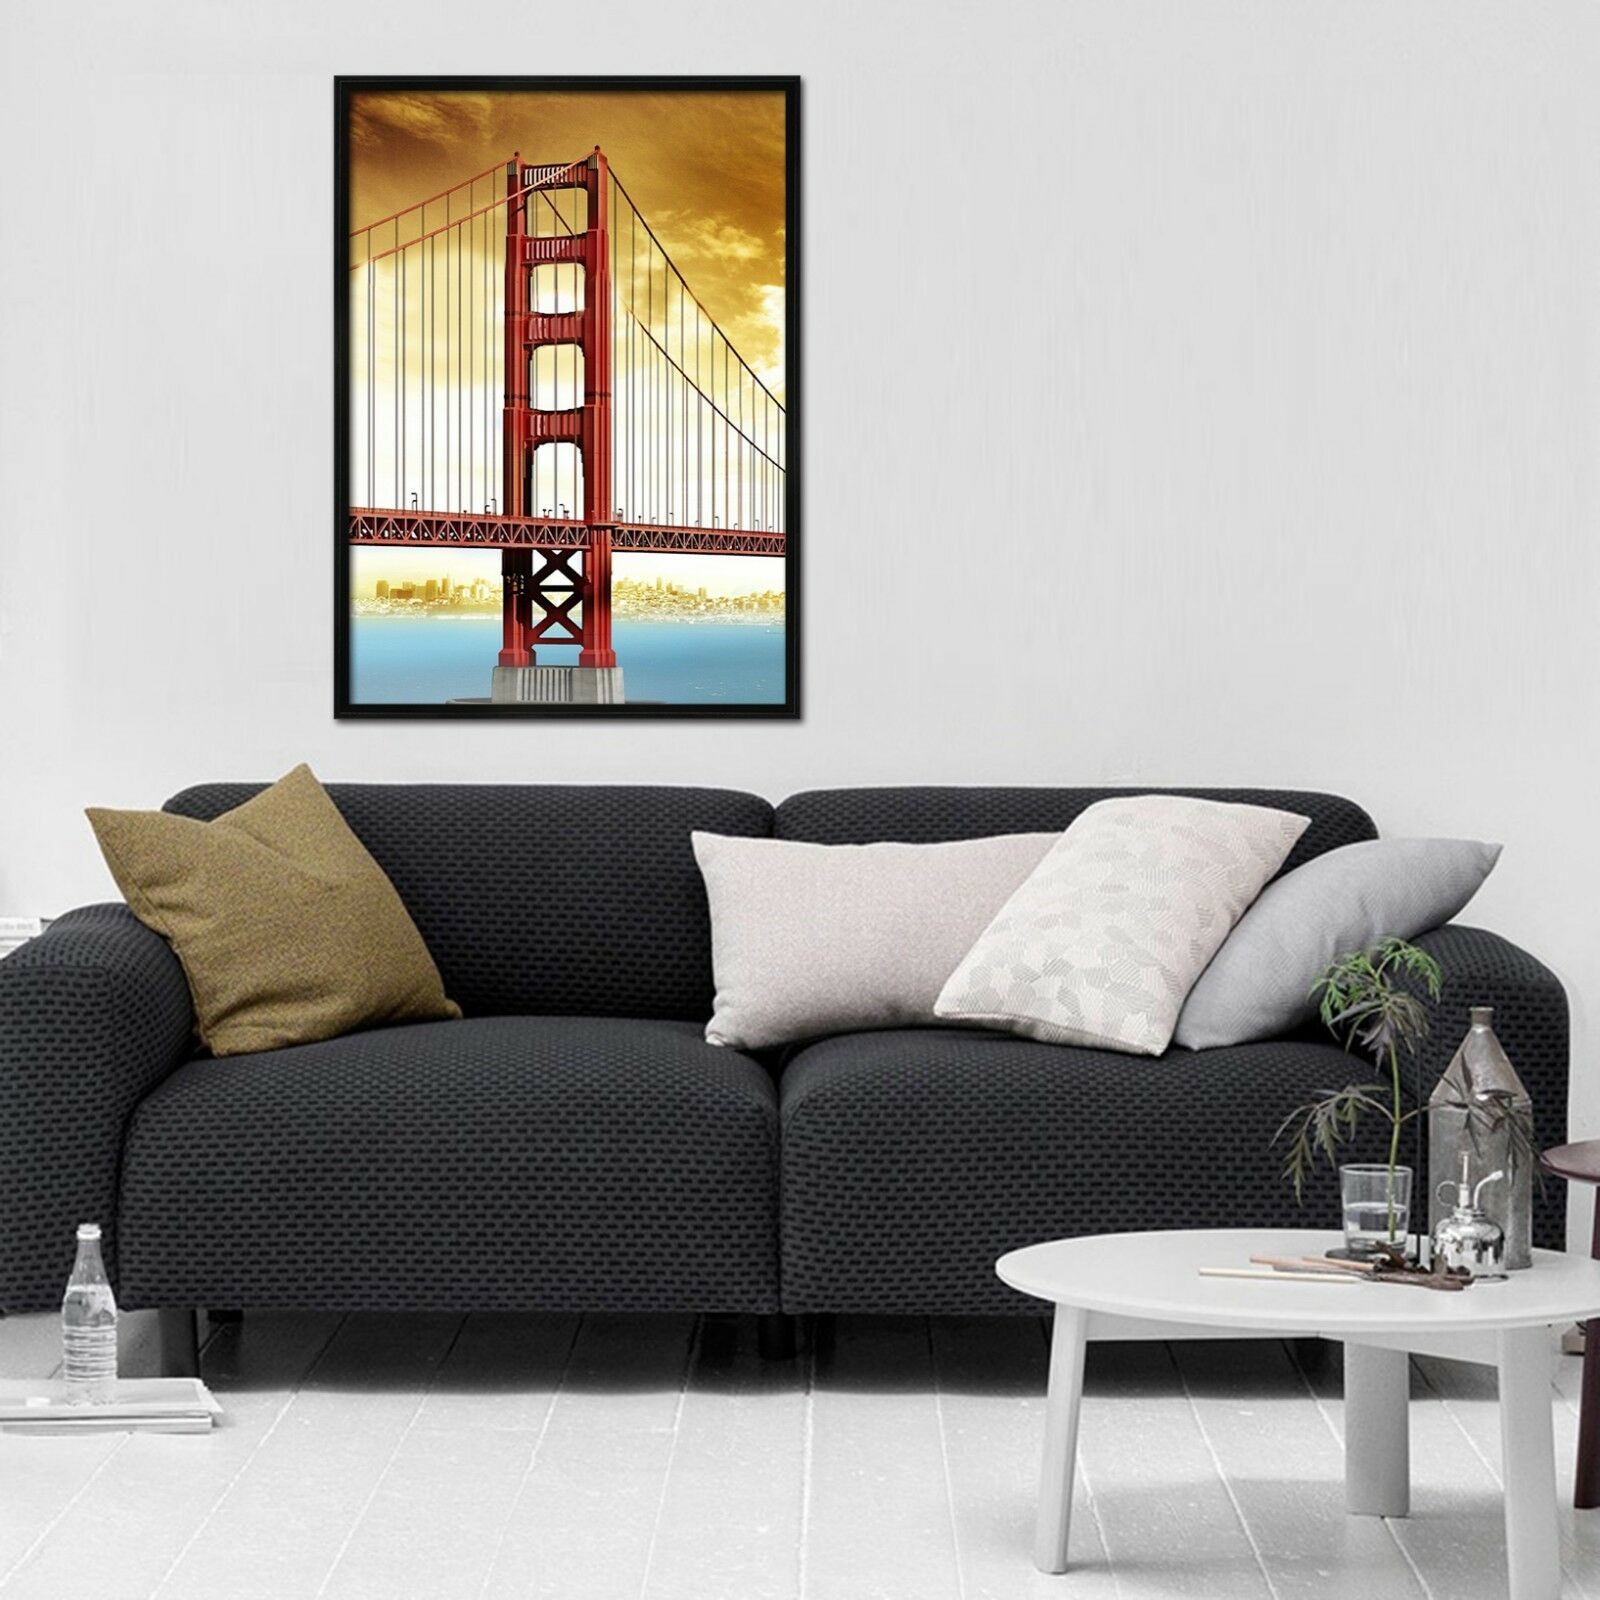 3D Sky Bridge 665 Fake Framed Poster Home Decor Print Painting Unique Art